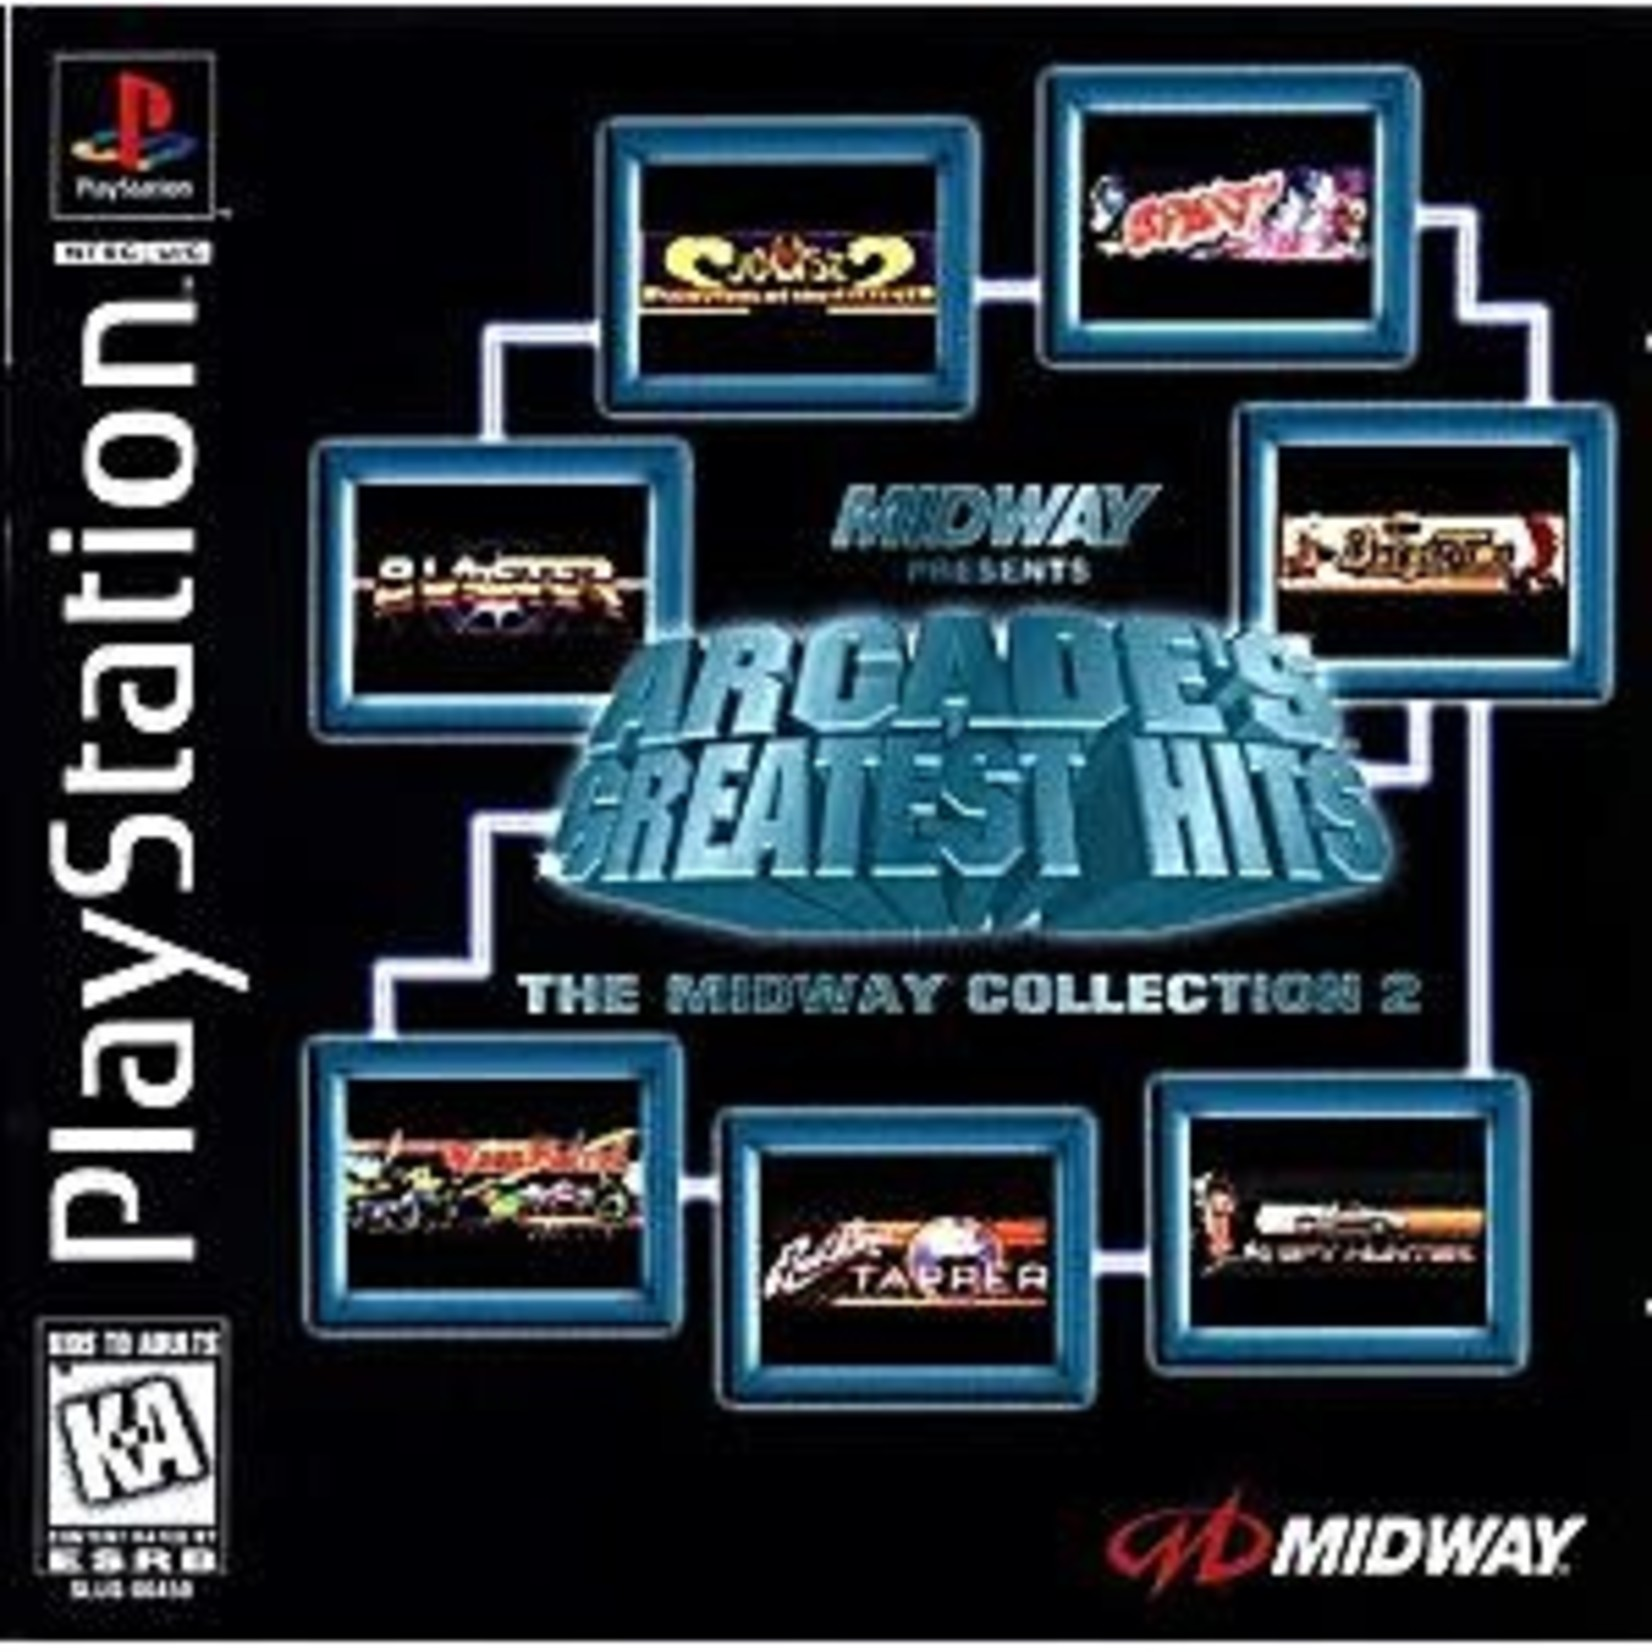 PS1U-Arcade's Greatest Hits Midway Collection 2